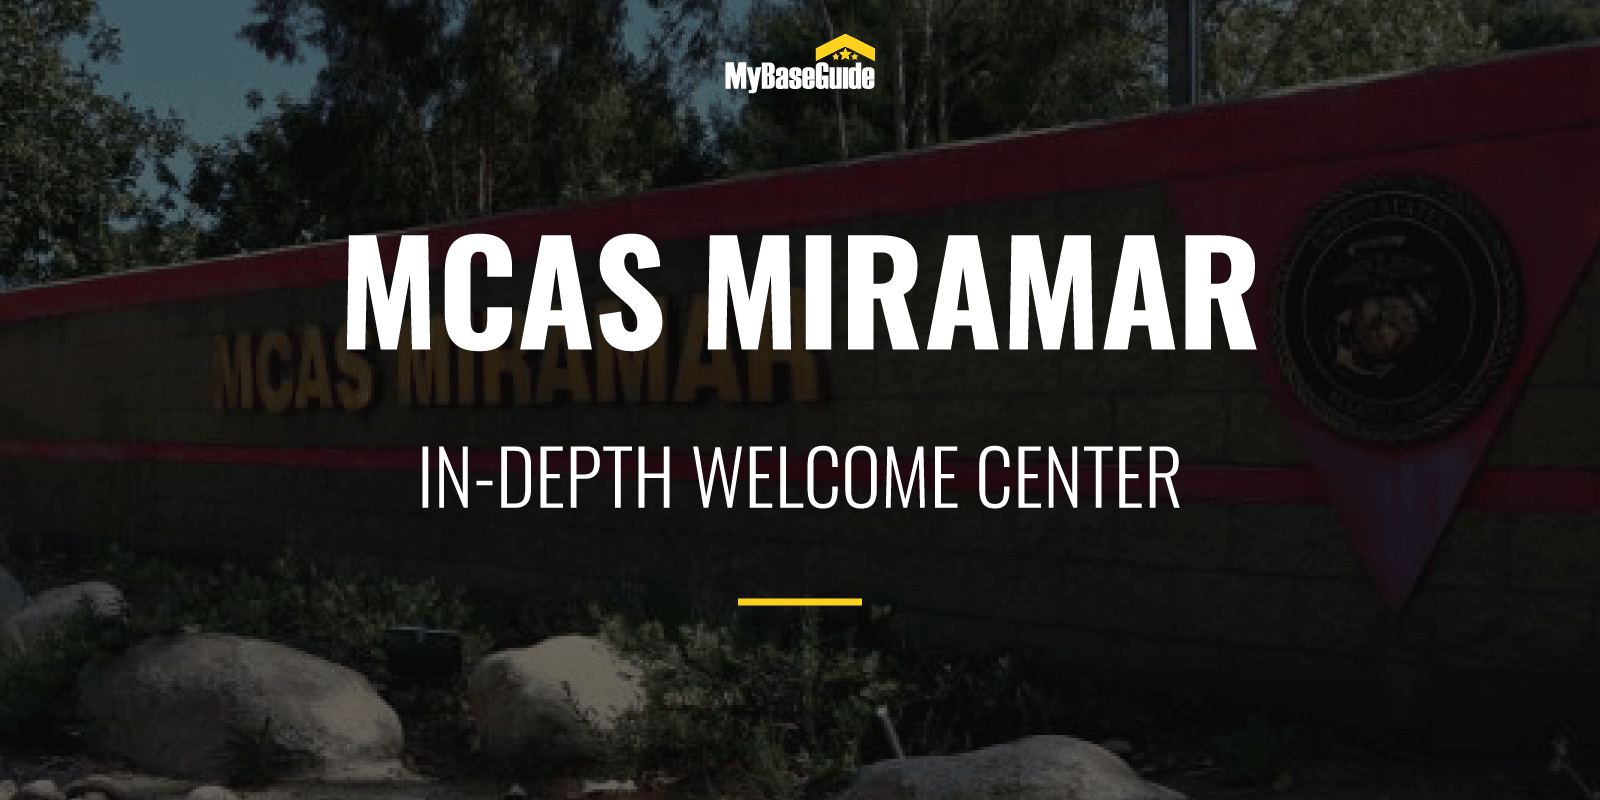 MCAS Miramar: In-Depth Welcome Center